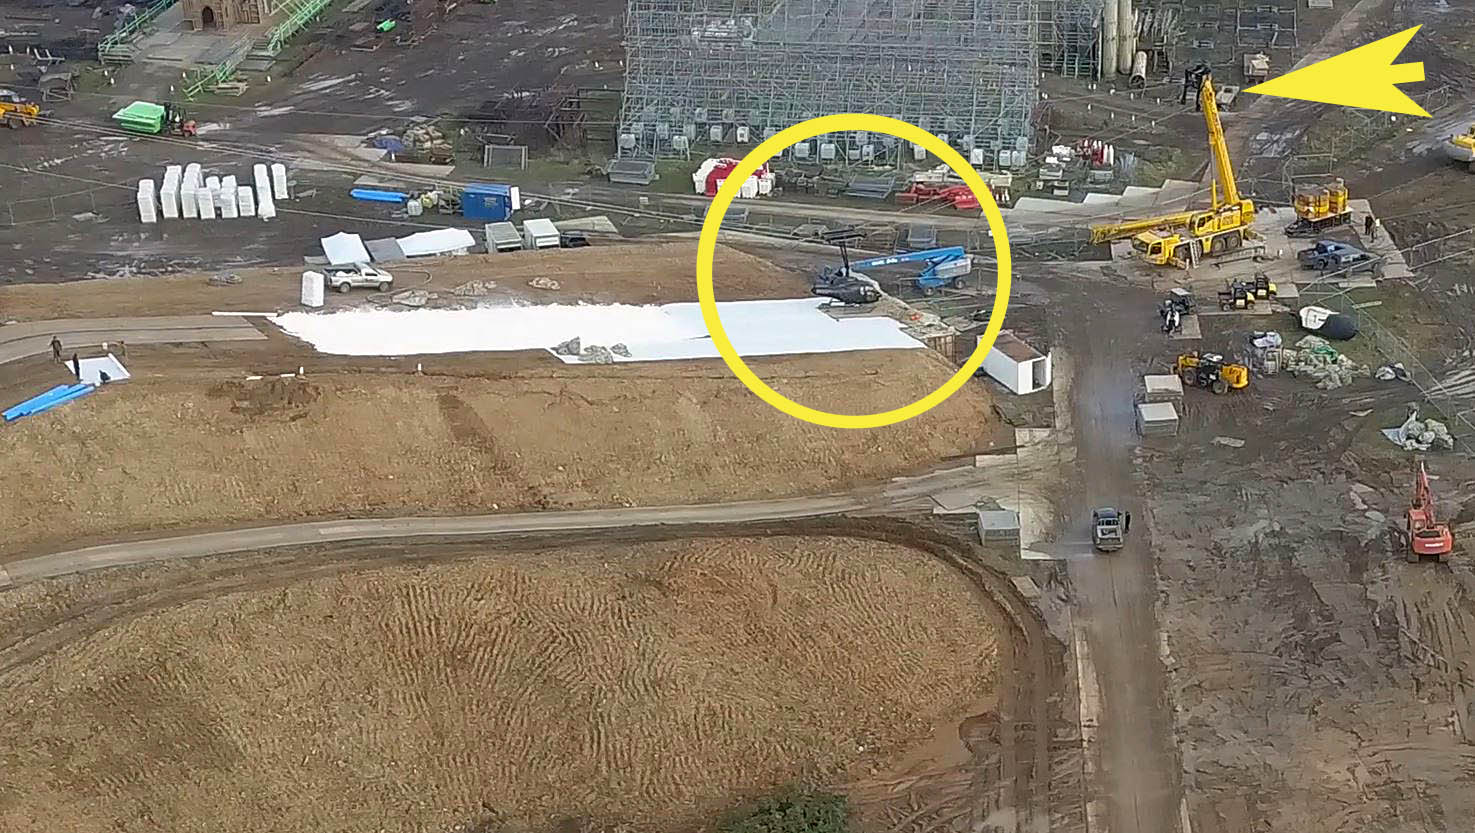 Mission Impossible Fallout Helicopter Lands at NEW Warner Harry Potter Studio Tour